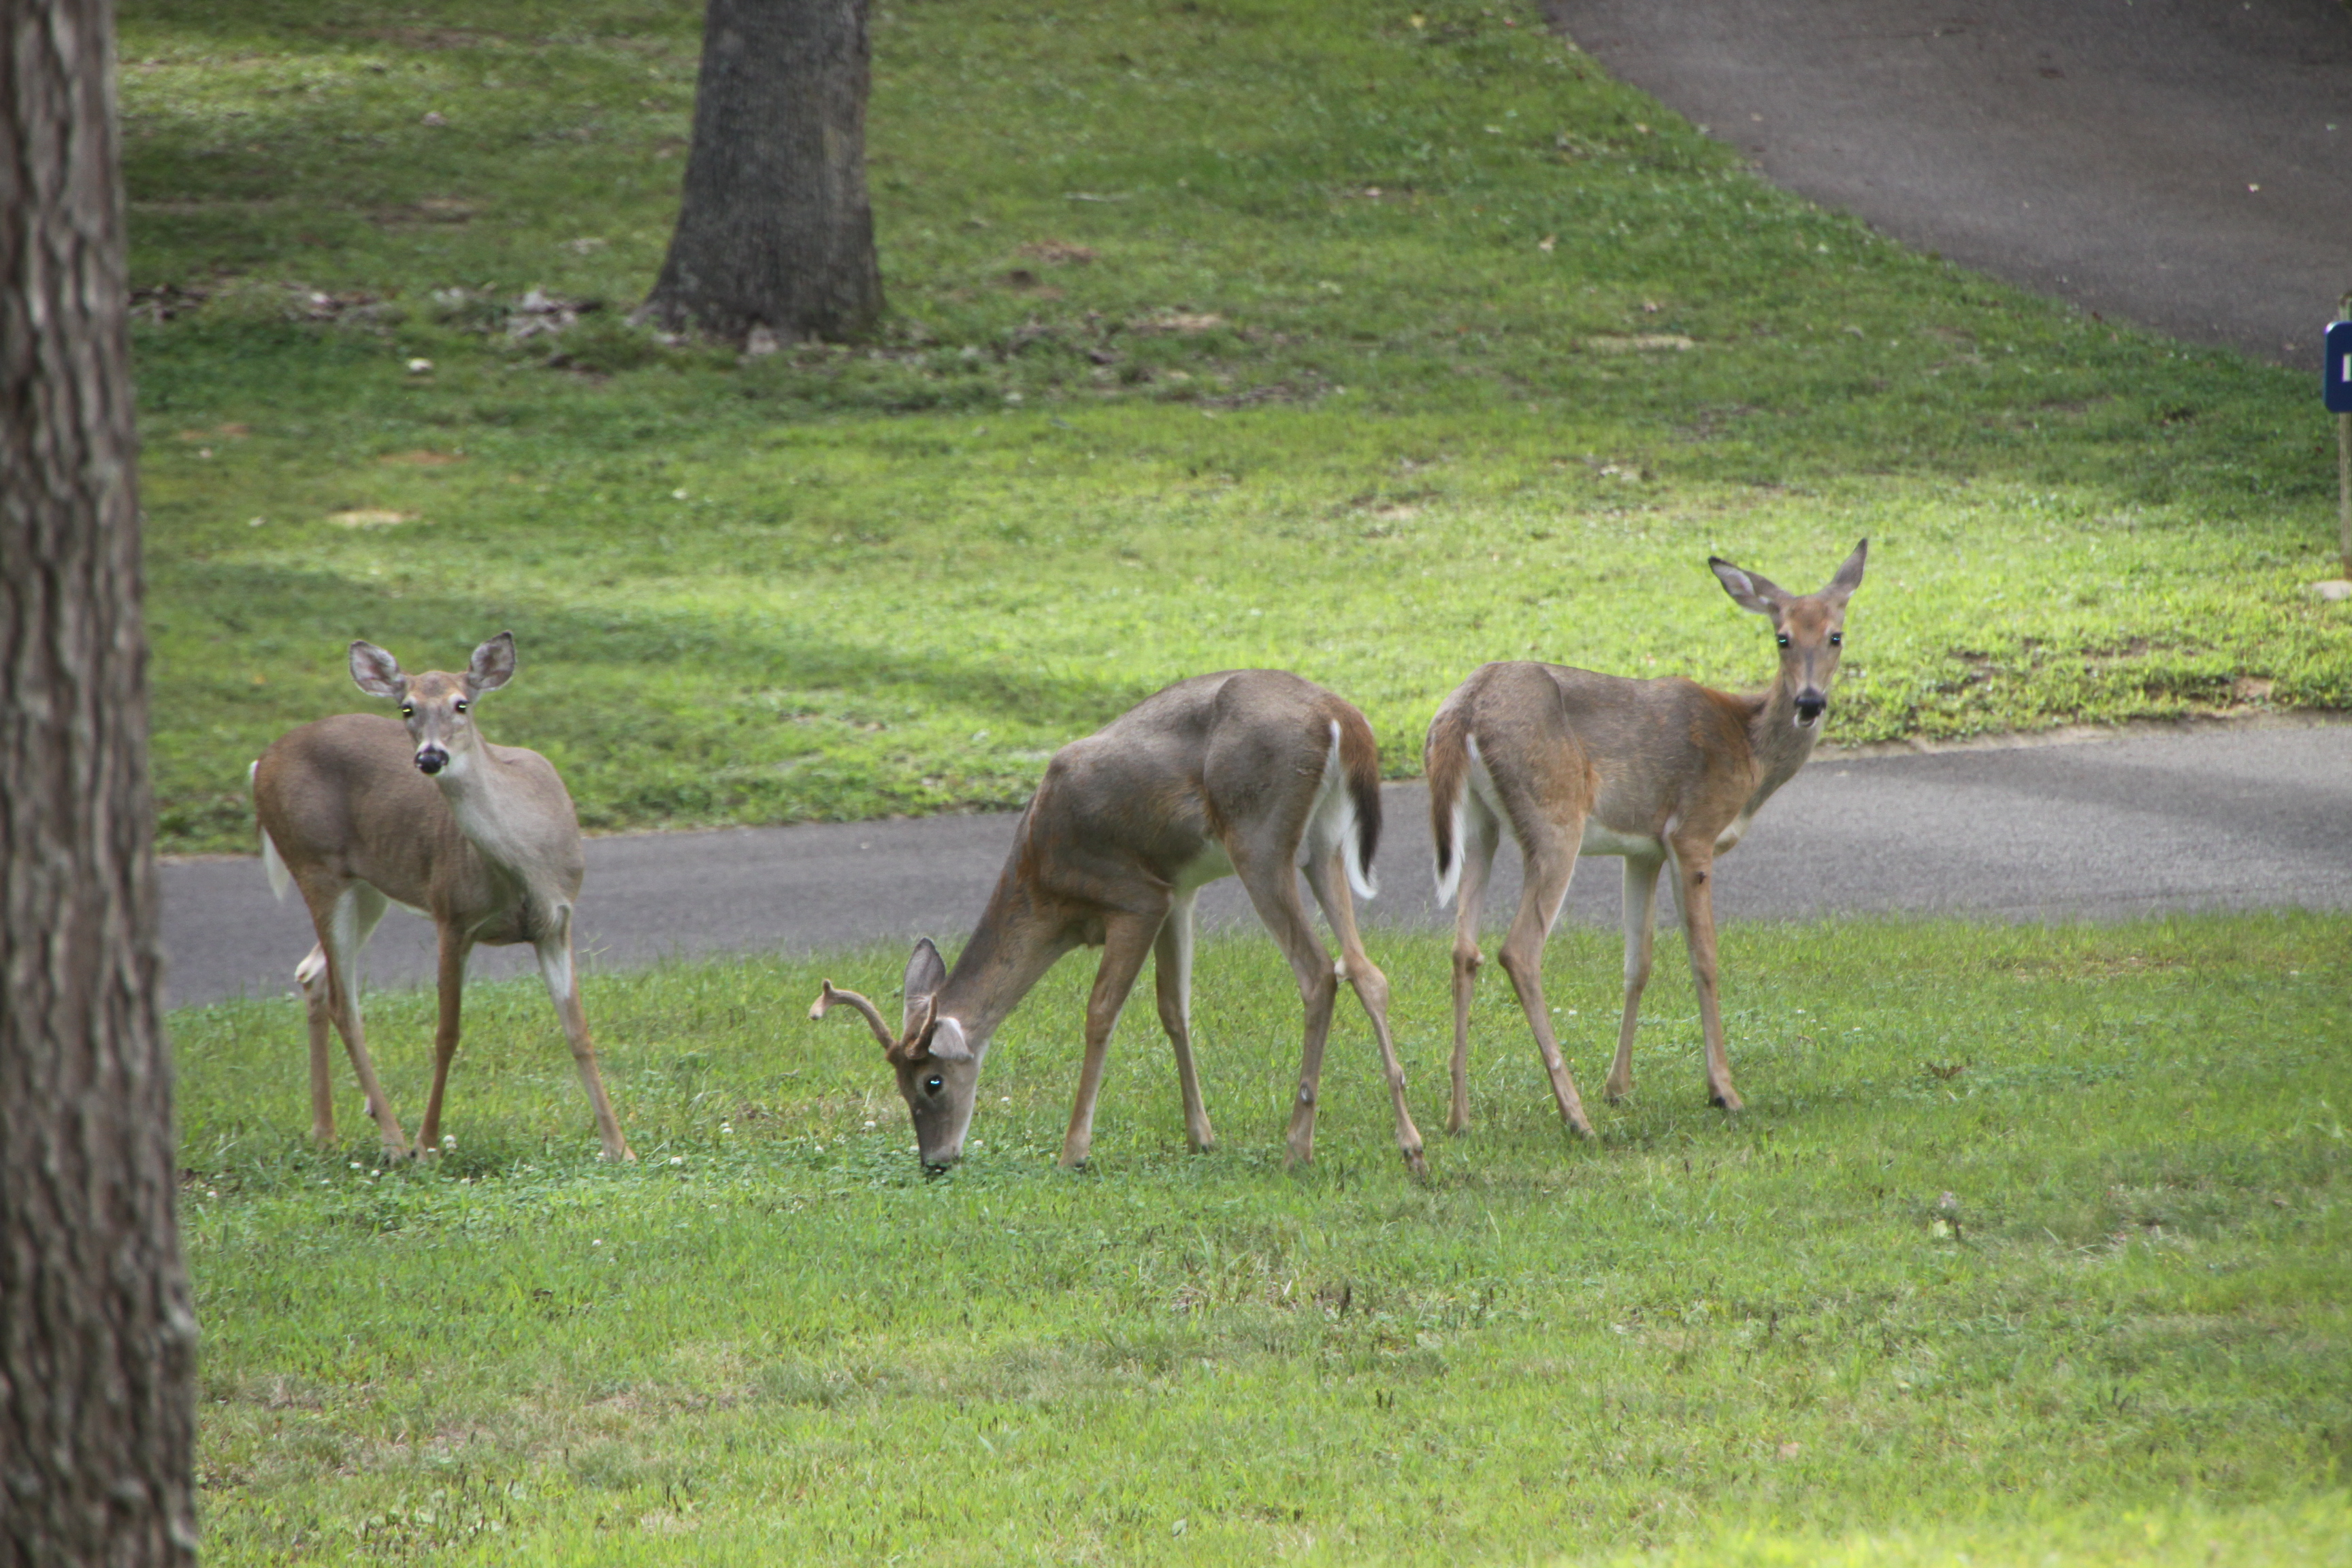 When does go into estrus, the bucks go crazy – the rut is on!